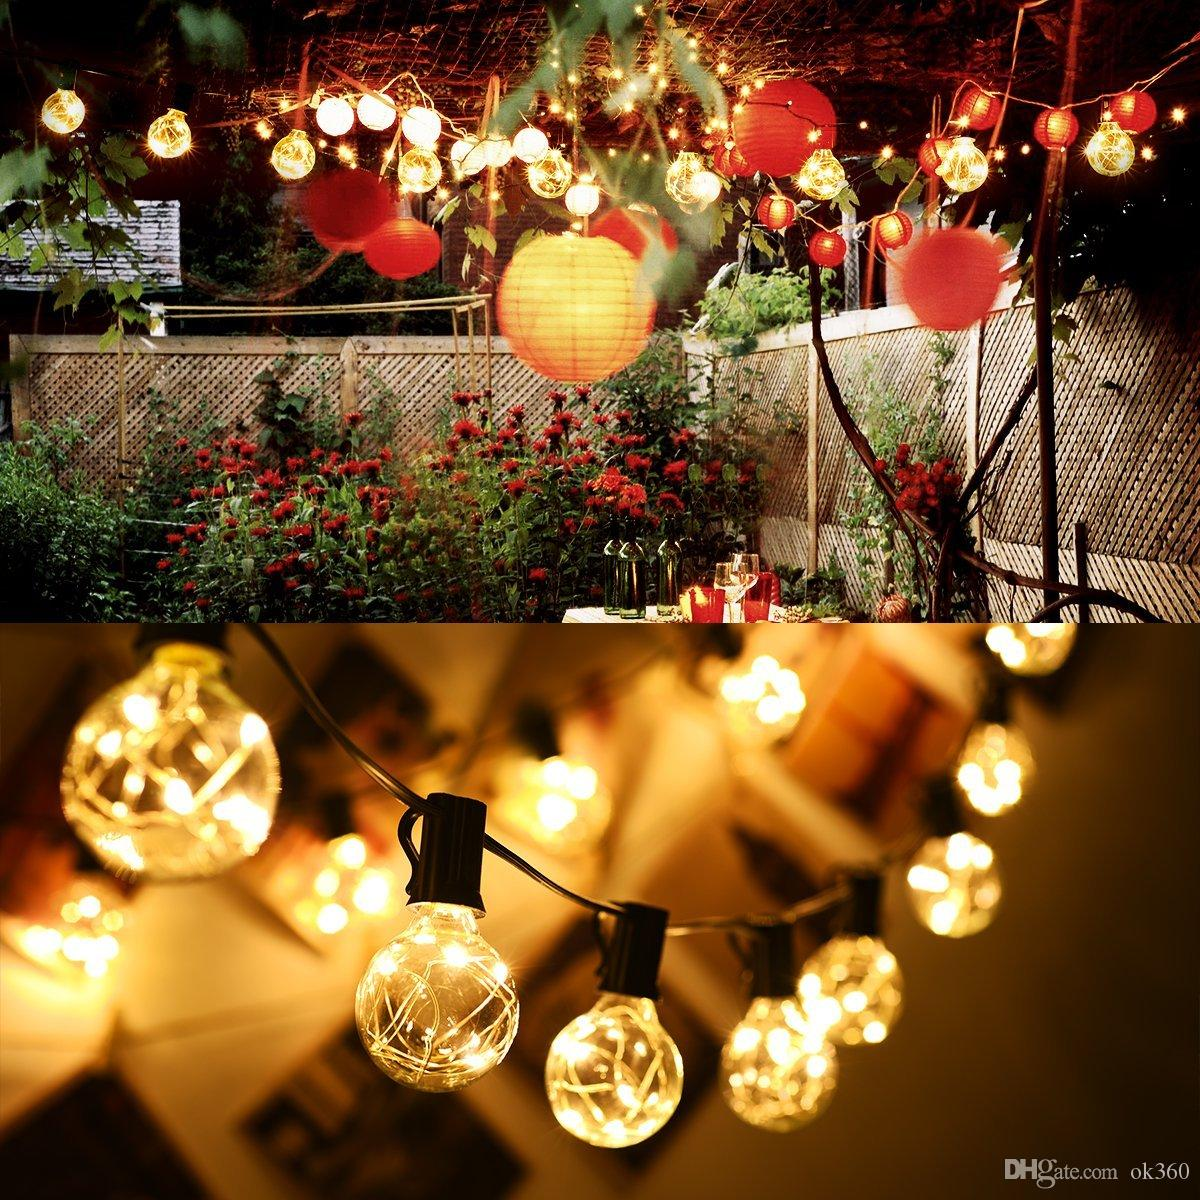 G40 String Lights Wedding : Cheap String Lights With 25led G40 Bulbs Outdoor Globe Decorative Copper String Lights For ...